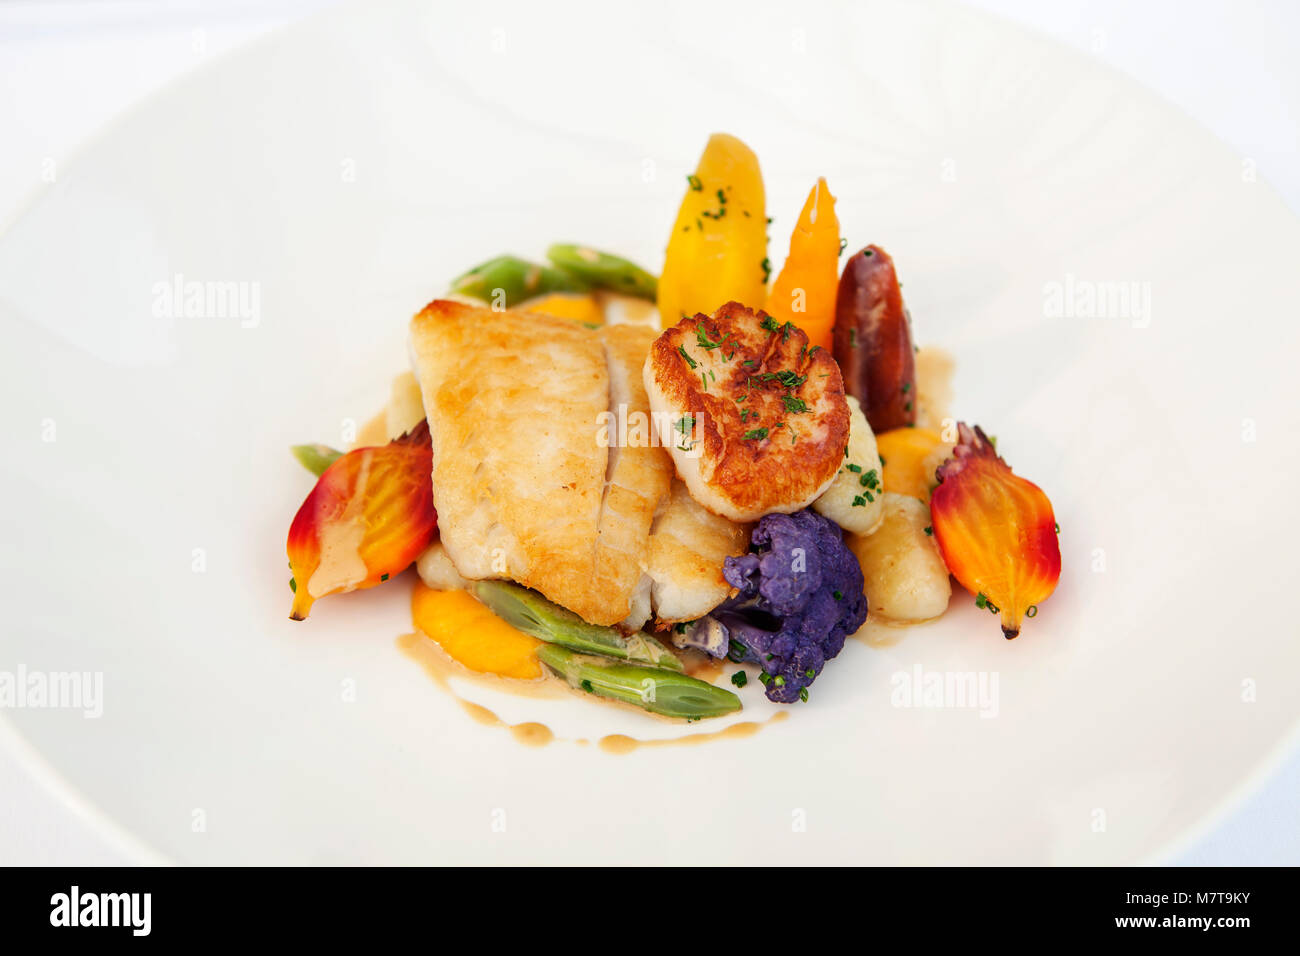 Fillet of fish with a scallop and served with vegetables - Stock Image